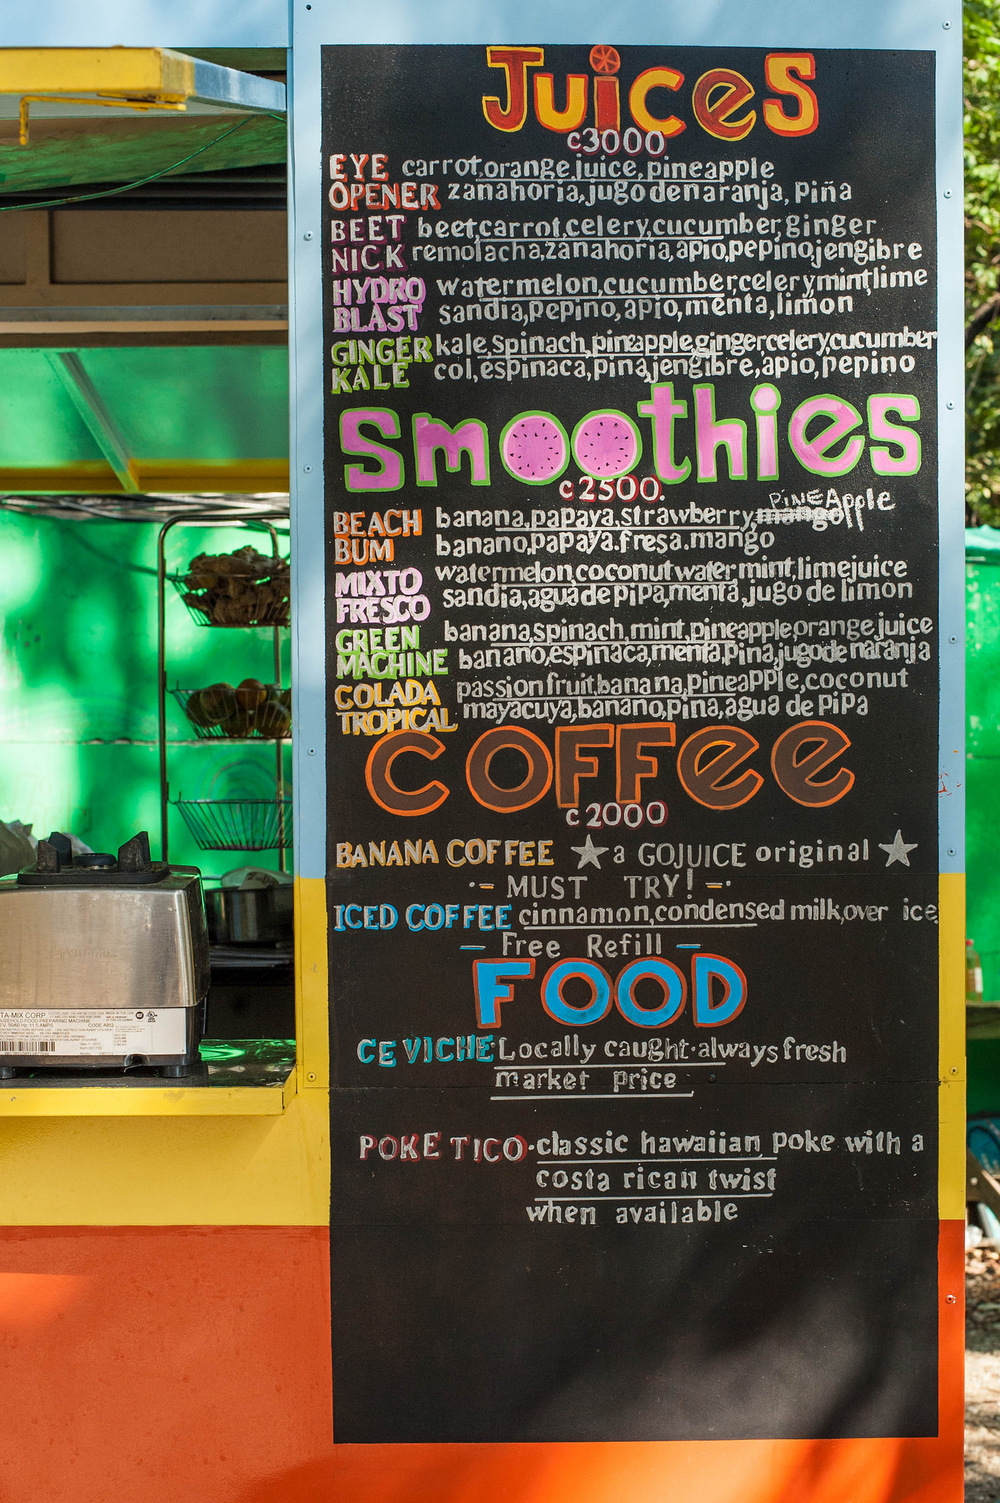 go-juice-menu-nosara-costa-rica